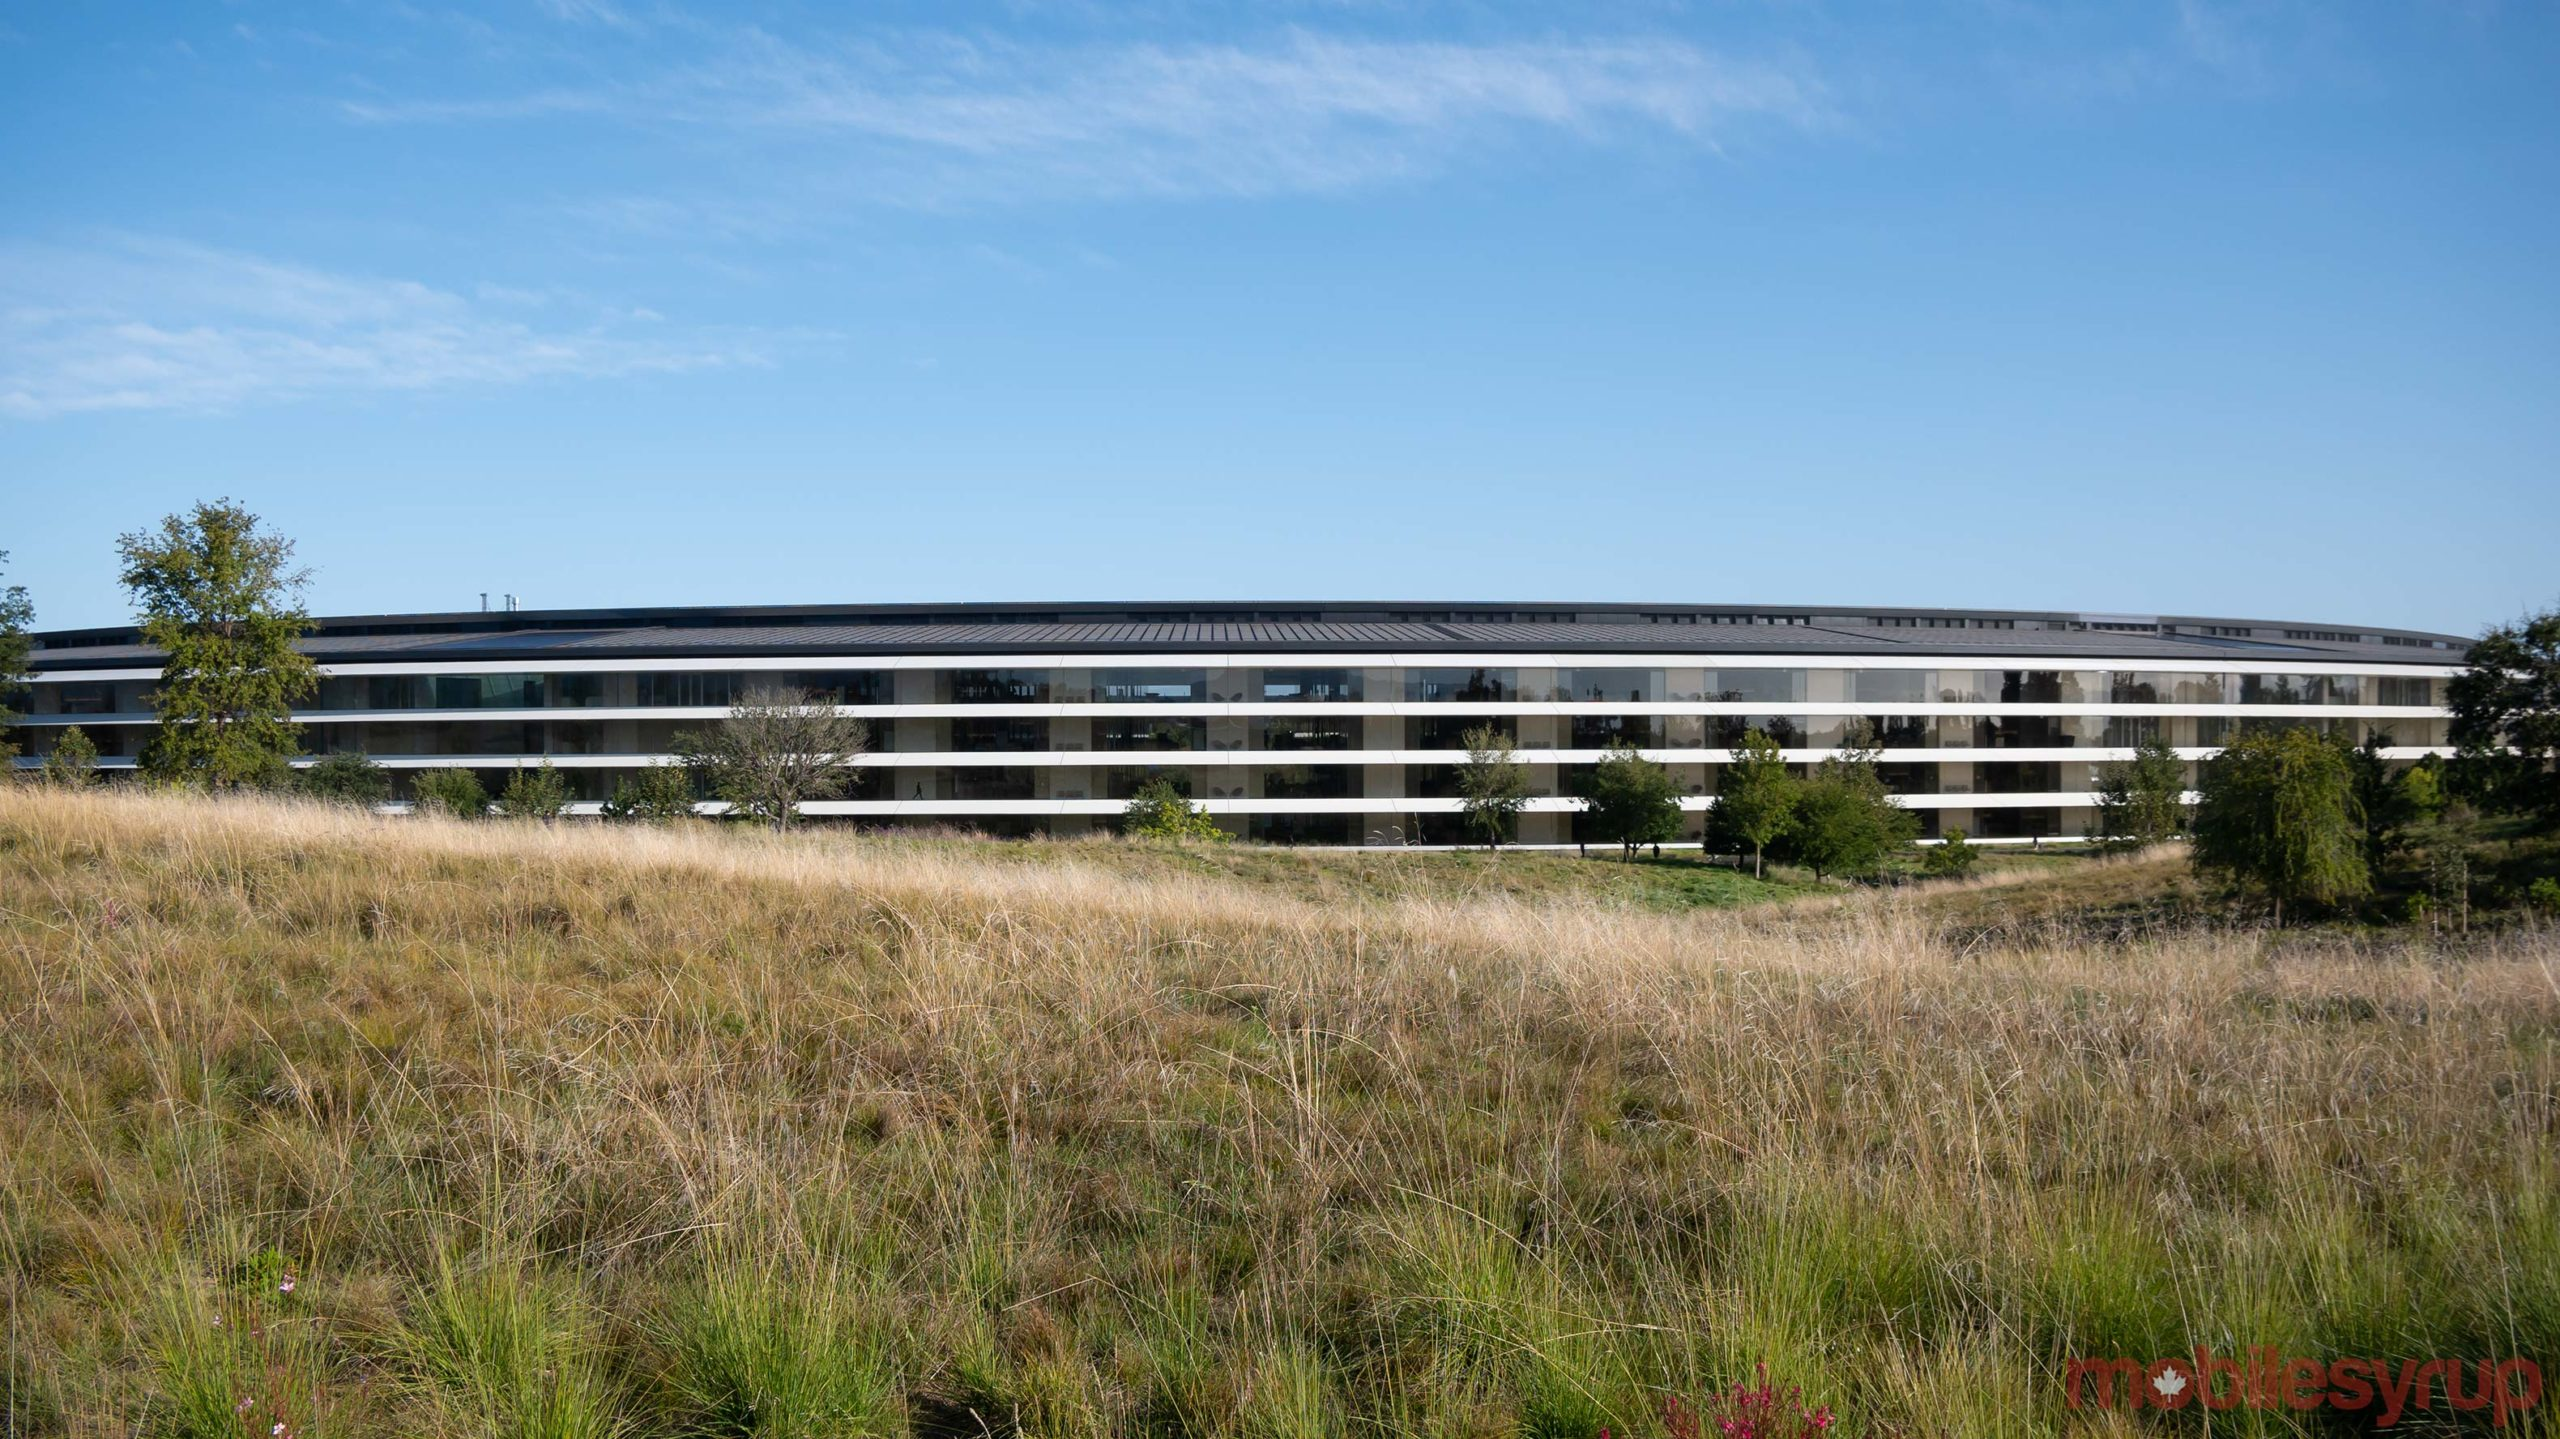 Le campus d'Apple